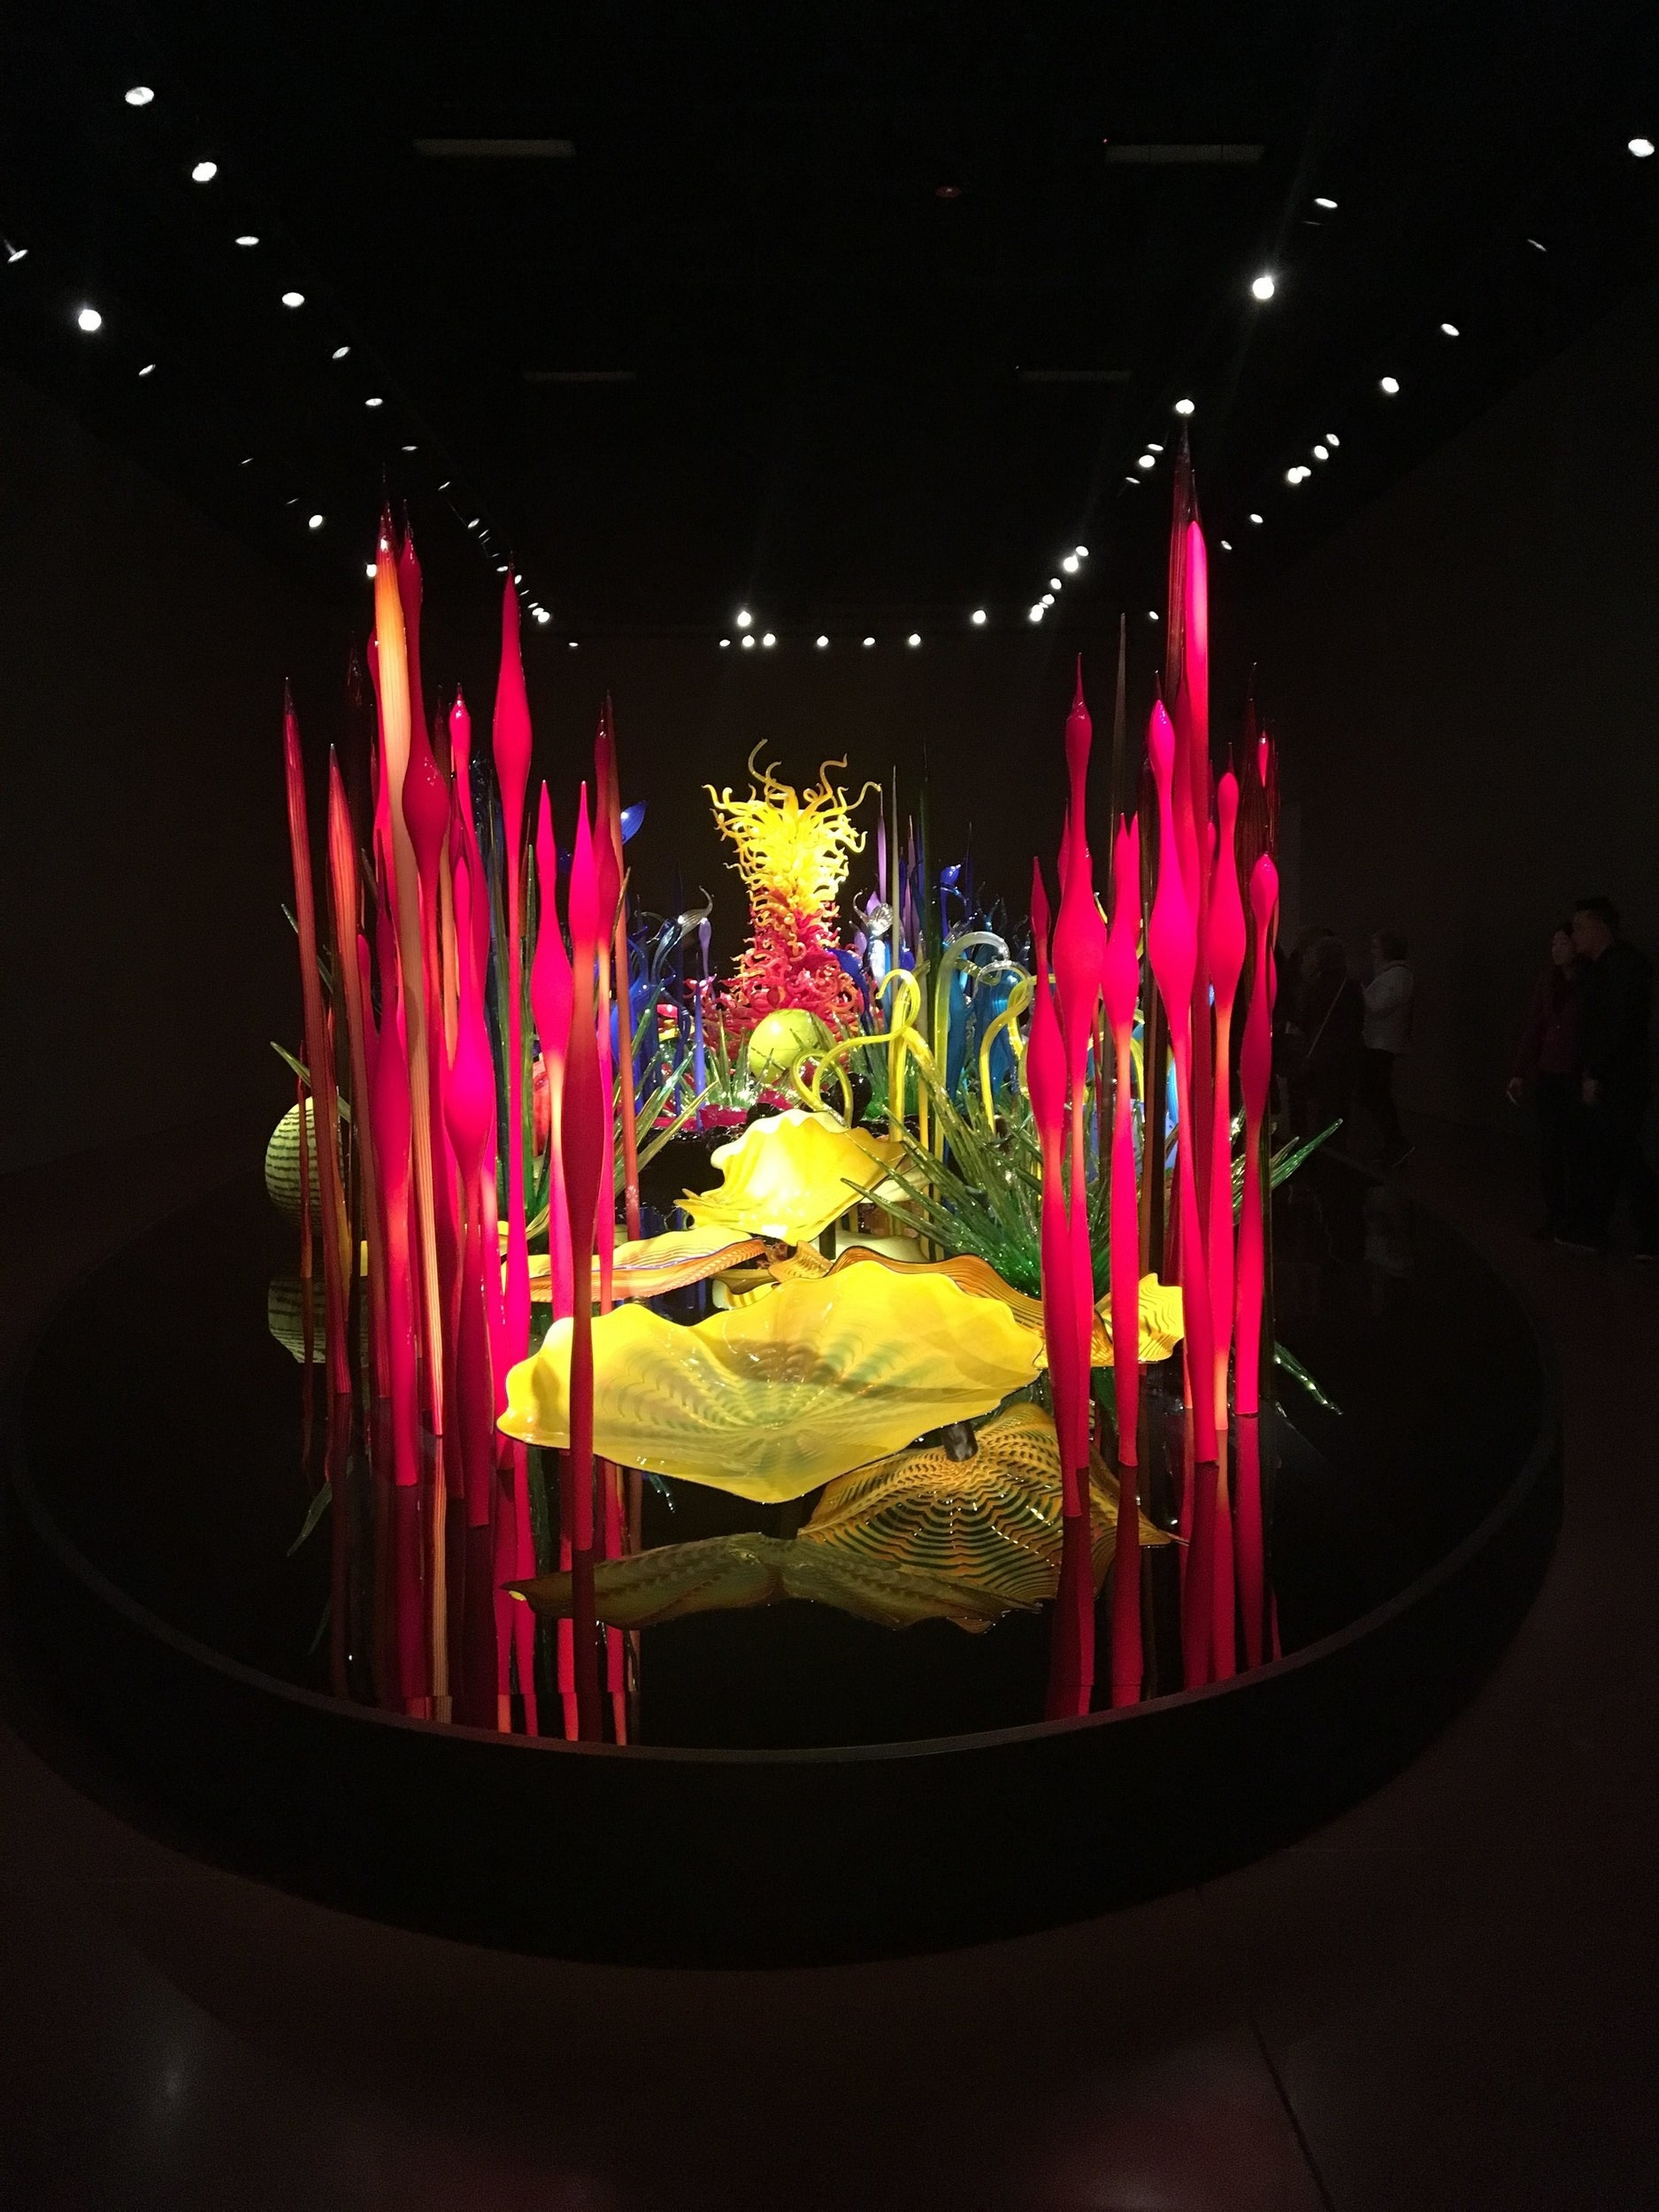 On our last morning in Seattle, we decided to visit the  Chihuly Garden and Glass  museum. The only time I had seen any Chihuly work was at the Belagio in Vegas. It was pretty cool seeing most of his work under one roof and in one garden.